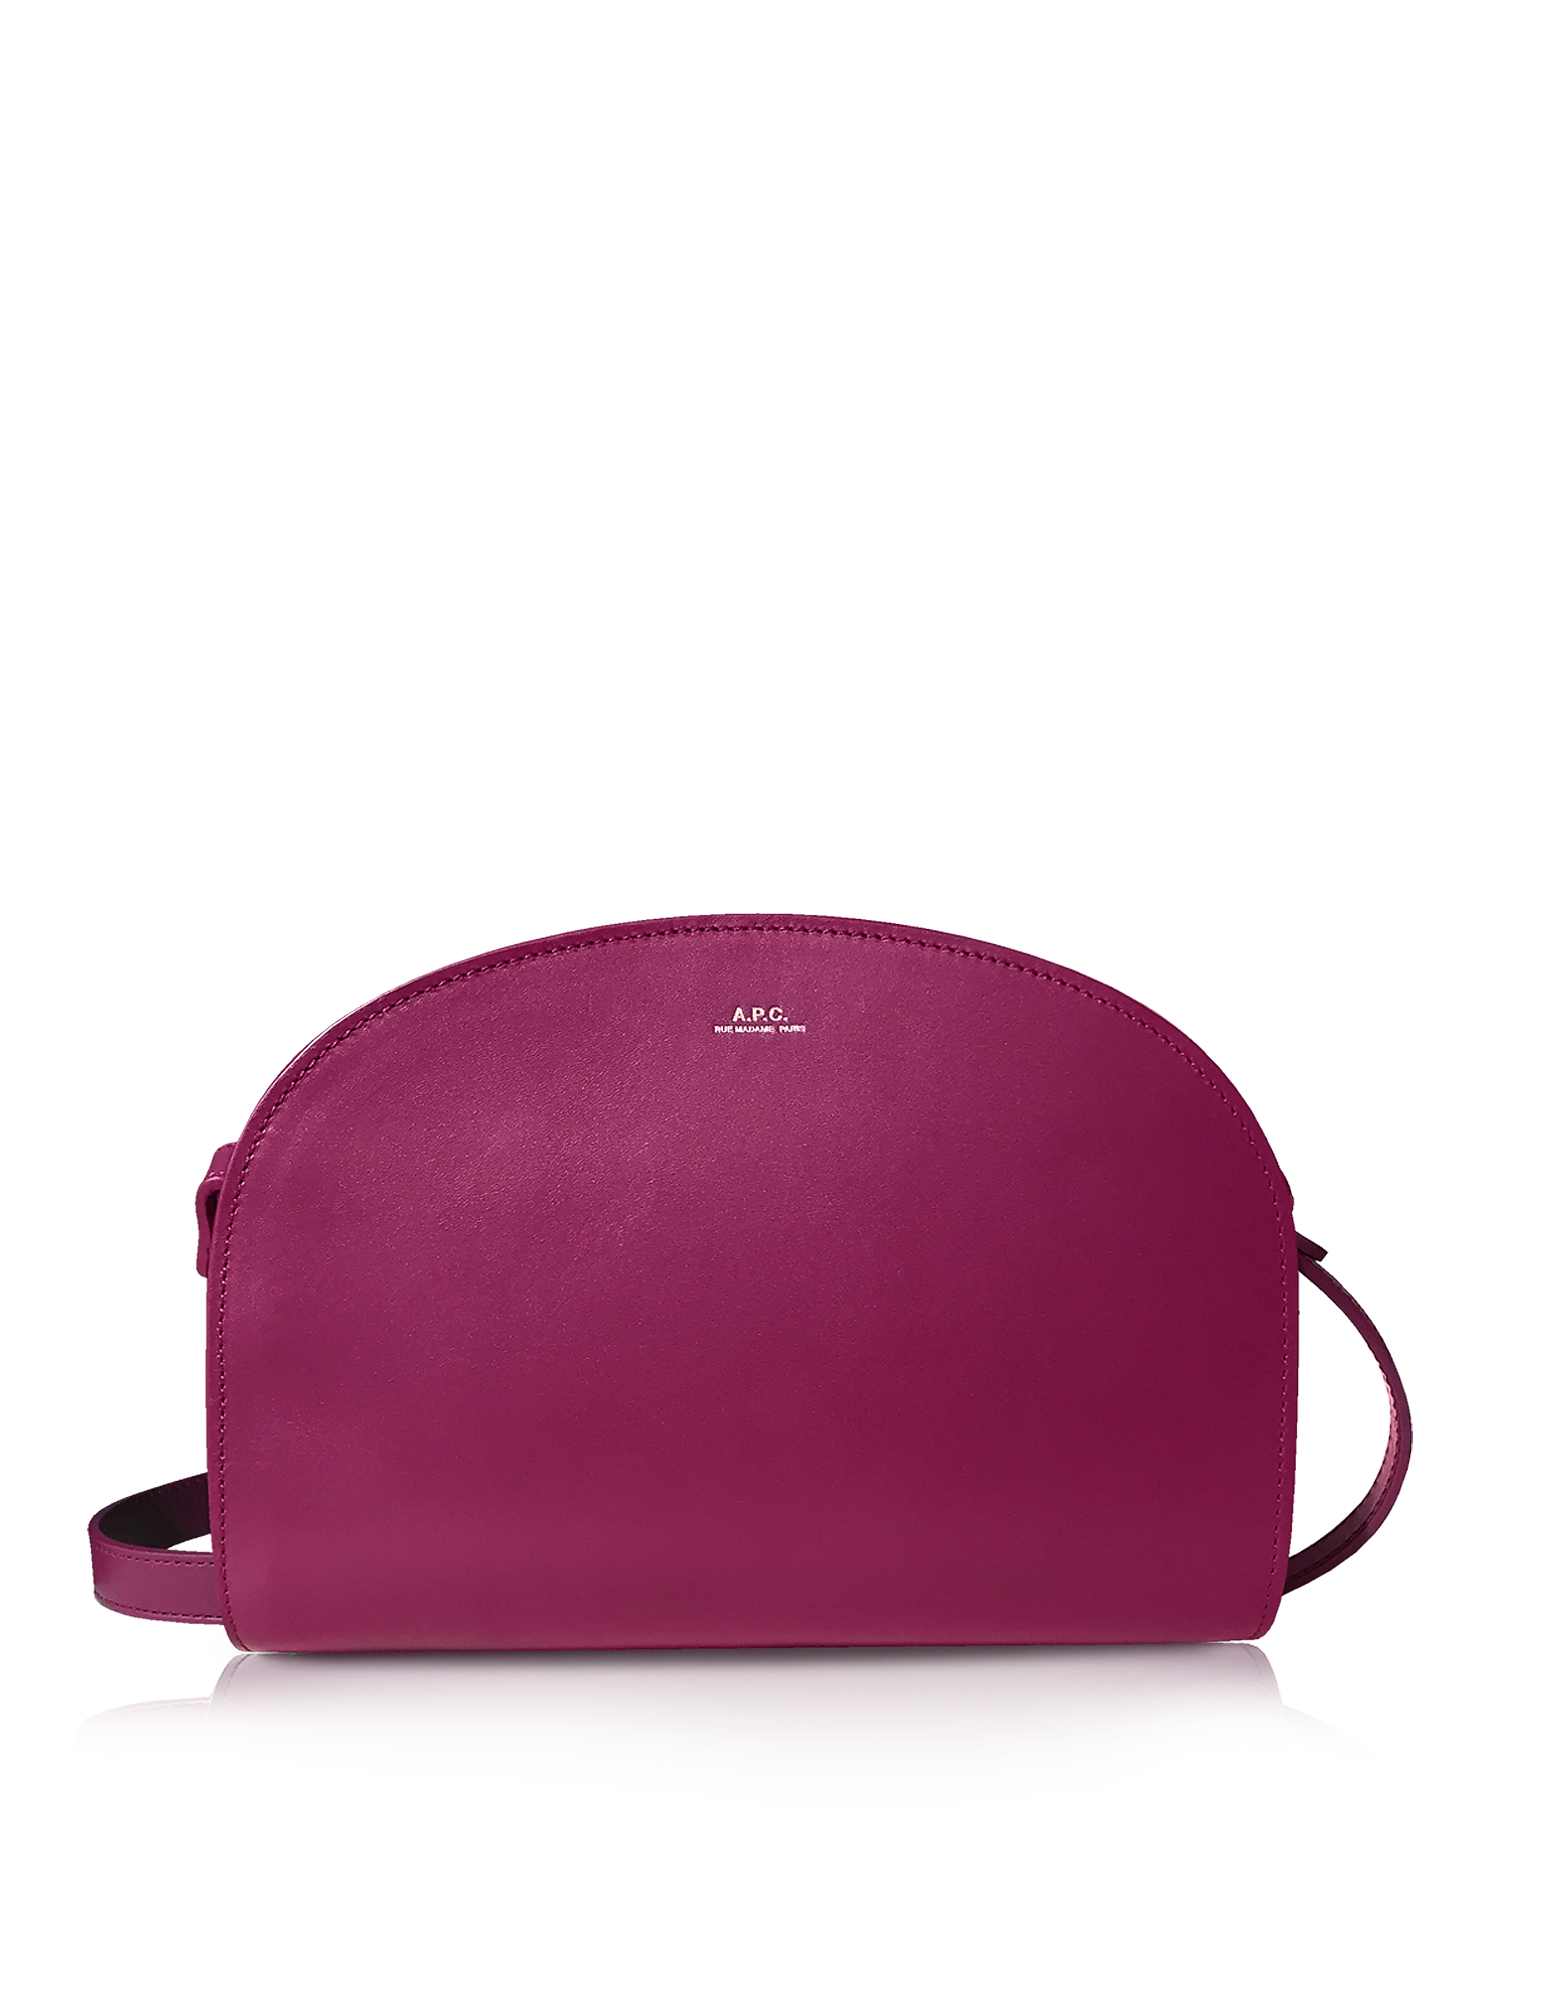 Demi Lune Borsa Crossbody in Pelle